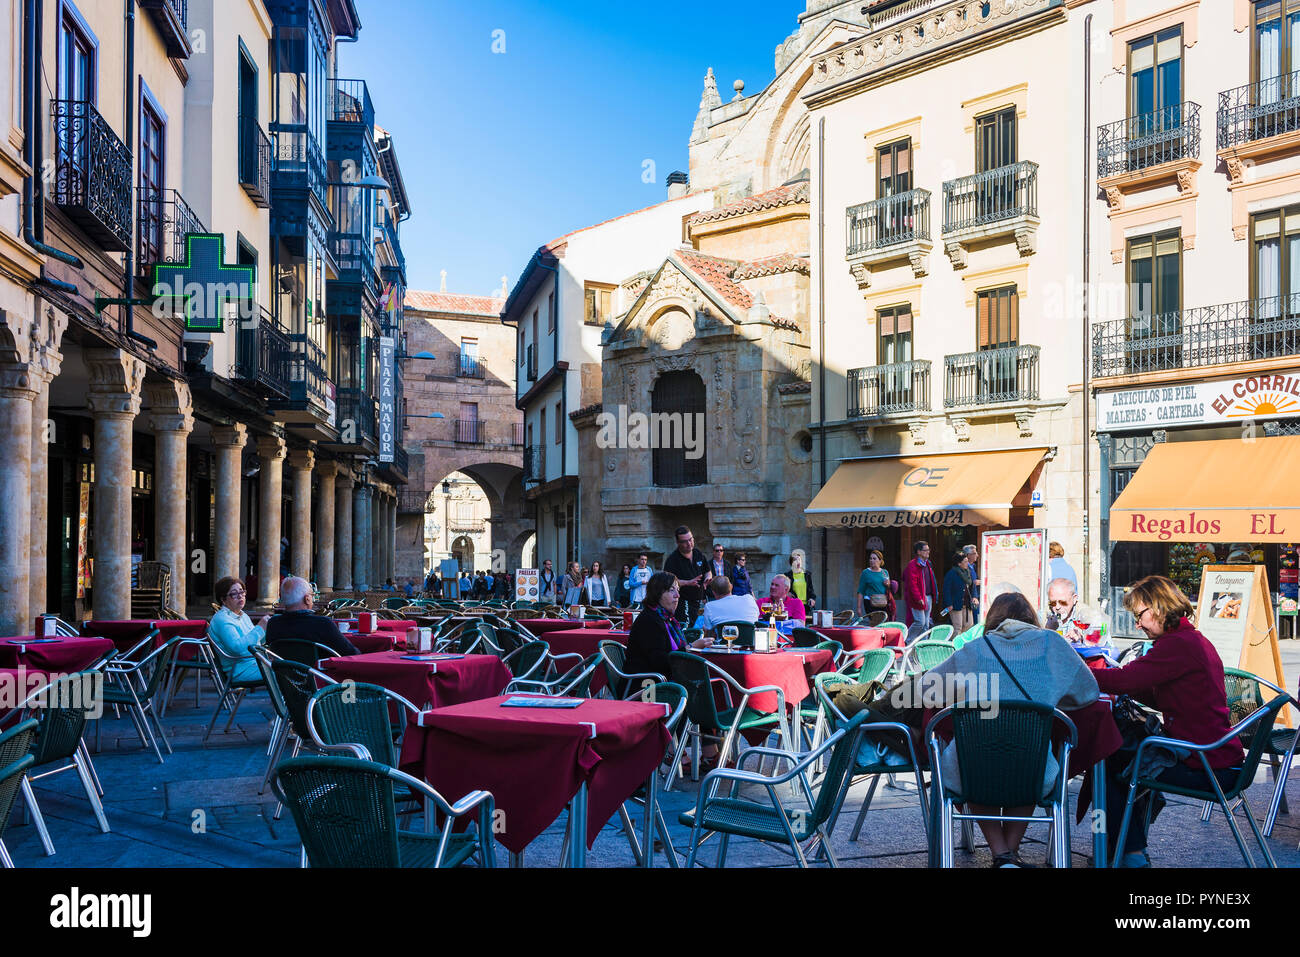 Lively street in the old town of Salamanca, Castilla y Leon, Spain, Europe - Stock Image